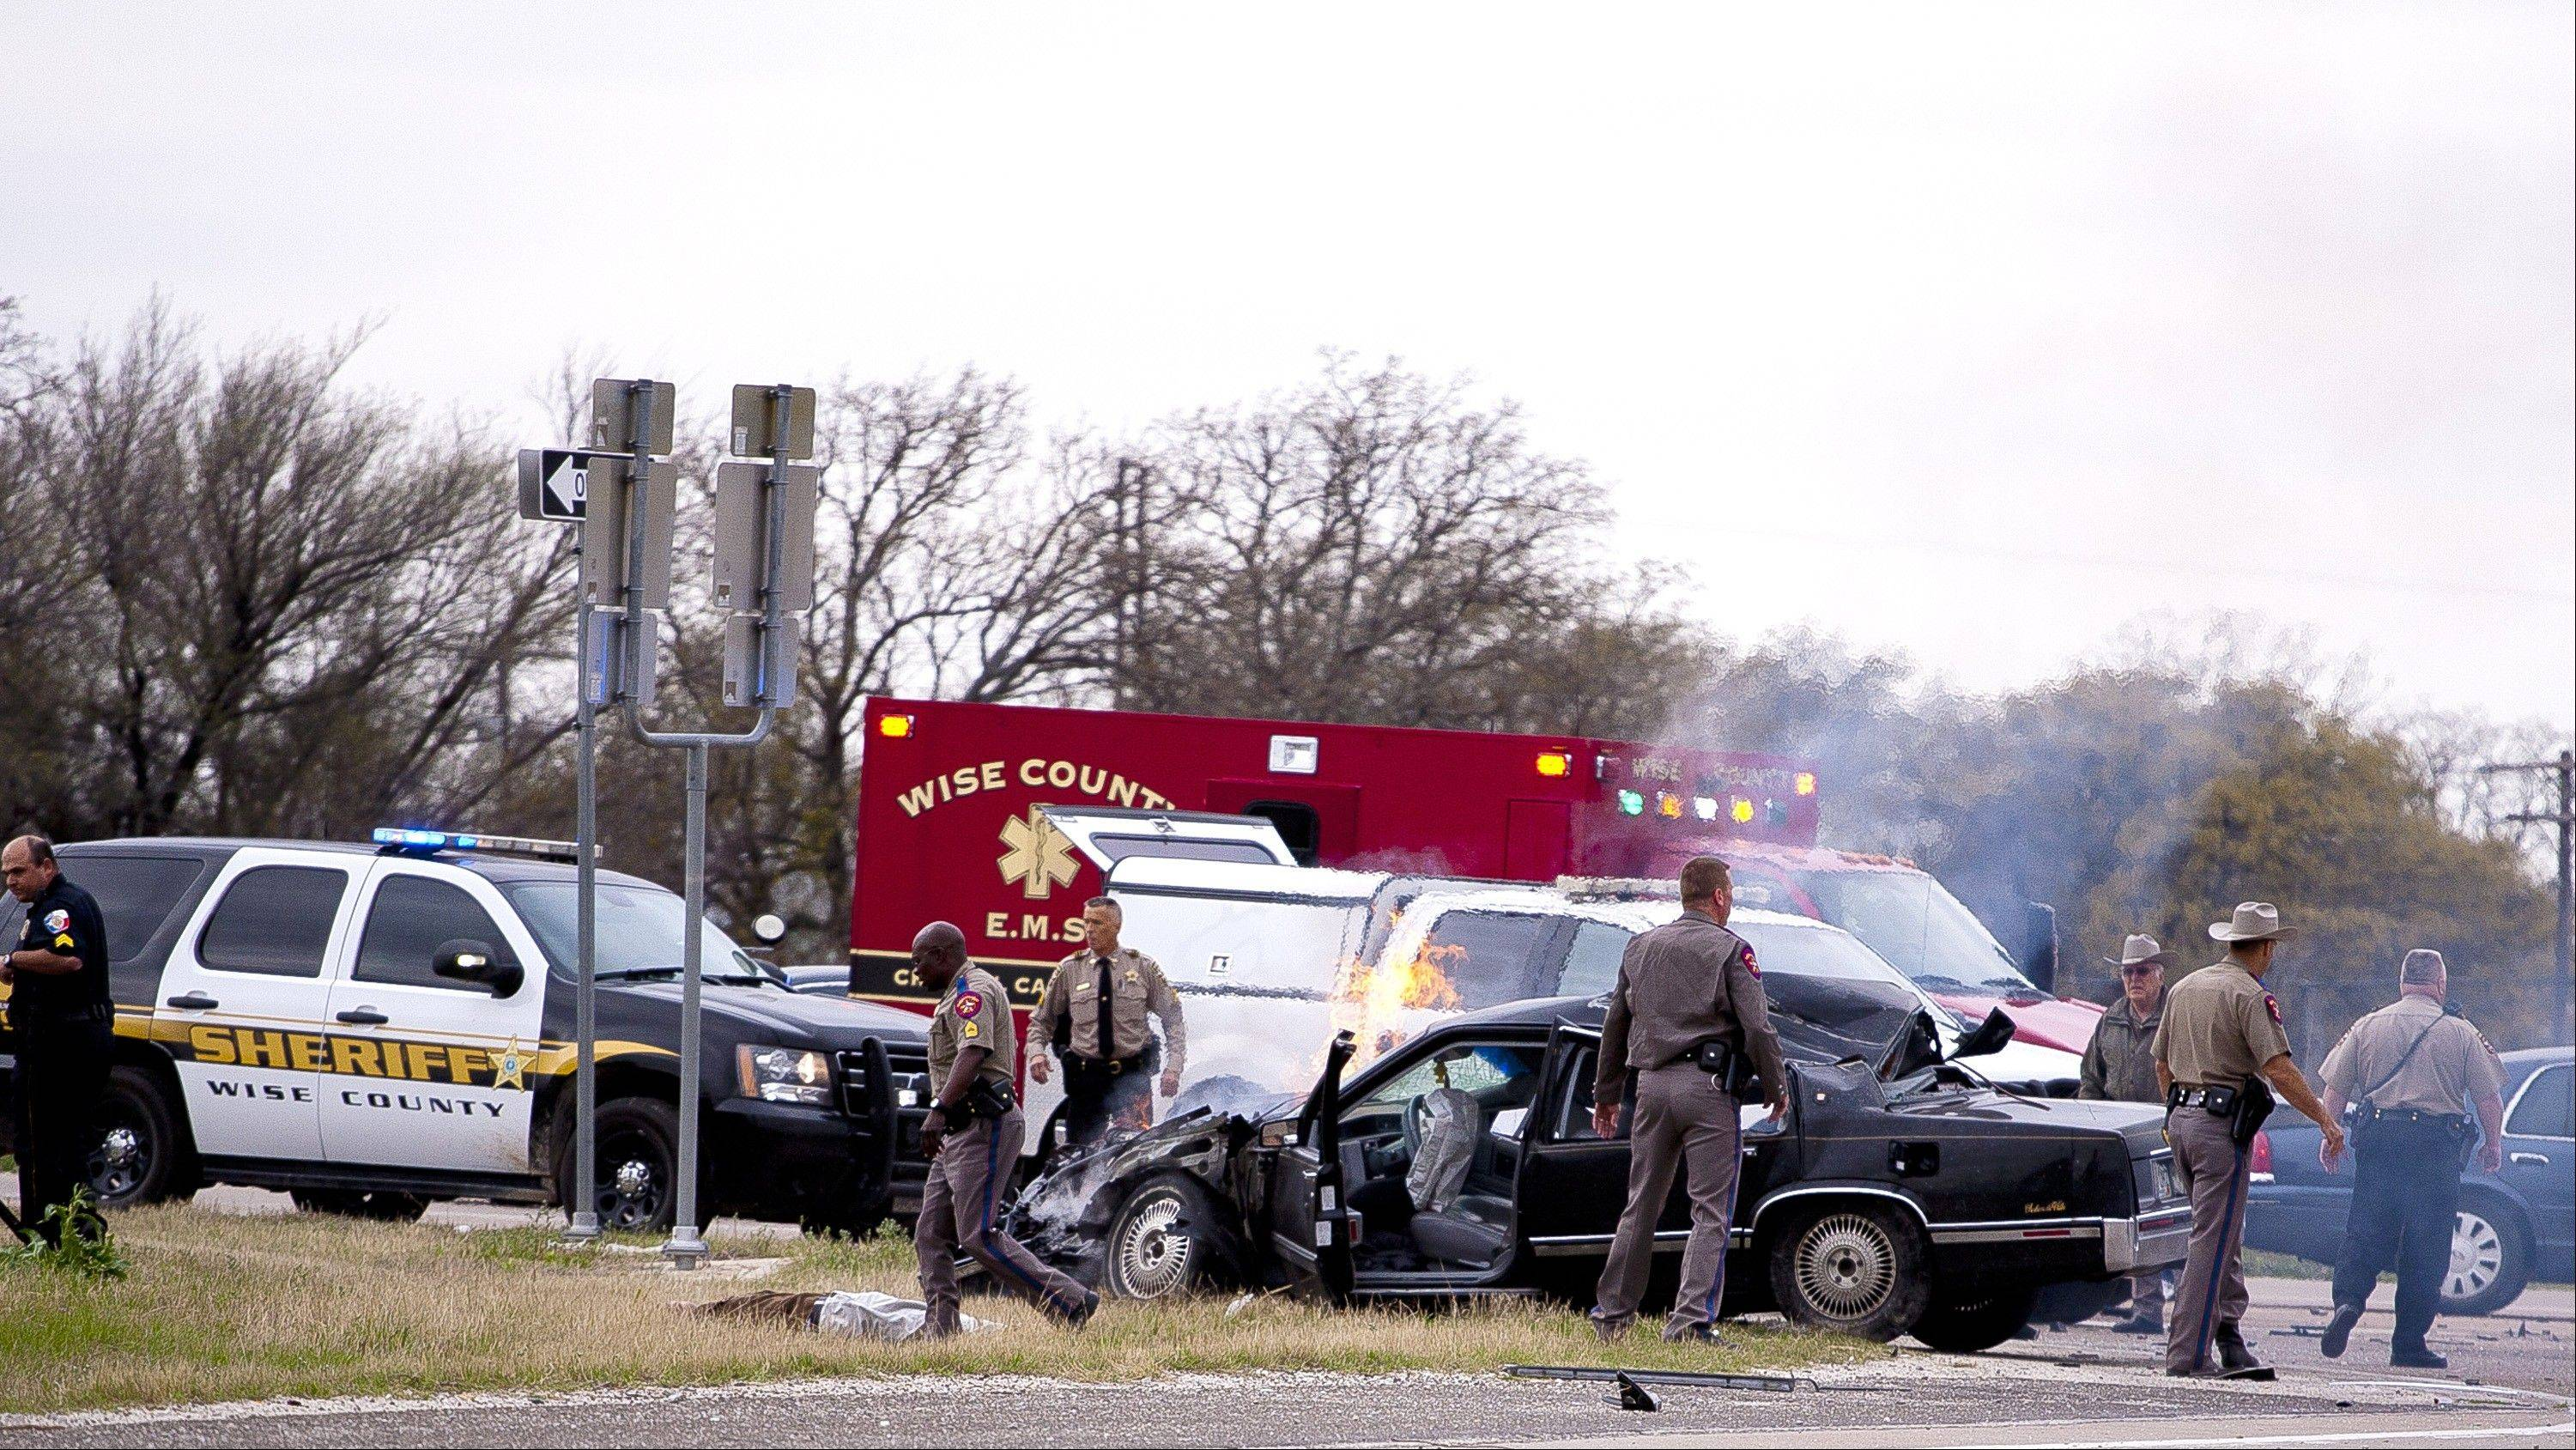 Emergency personnel on the scene of a crash and shootout with police involving the driver of a black Cadillac with Colorado plates in Decatur, Texas, Thursday, March 21, 2013. Investigators from three Colorado police agencies rushed to Texas to determine if a man identified as a parolee, who was critically wounded by Texas police after a harrowing 100-mph car chase, is linked to the slaying of Colorado�s state prisons chief.